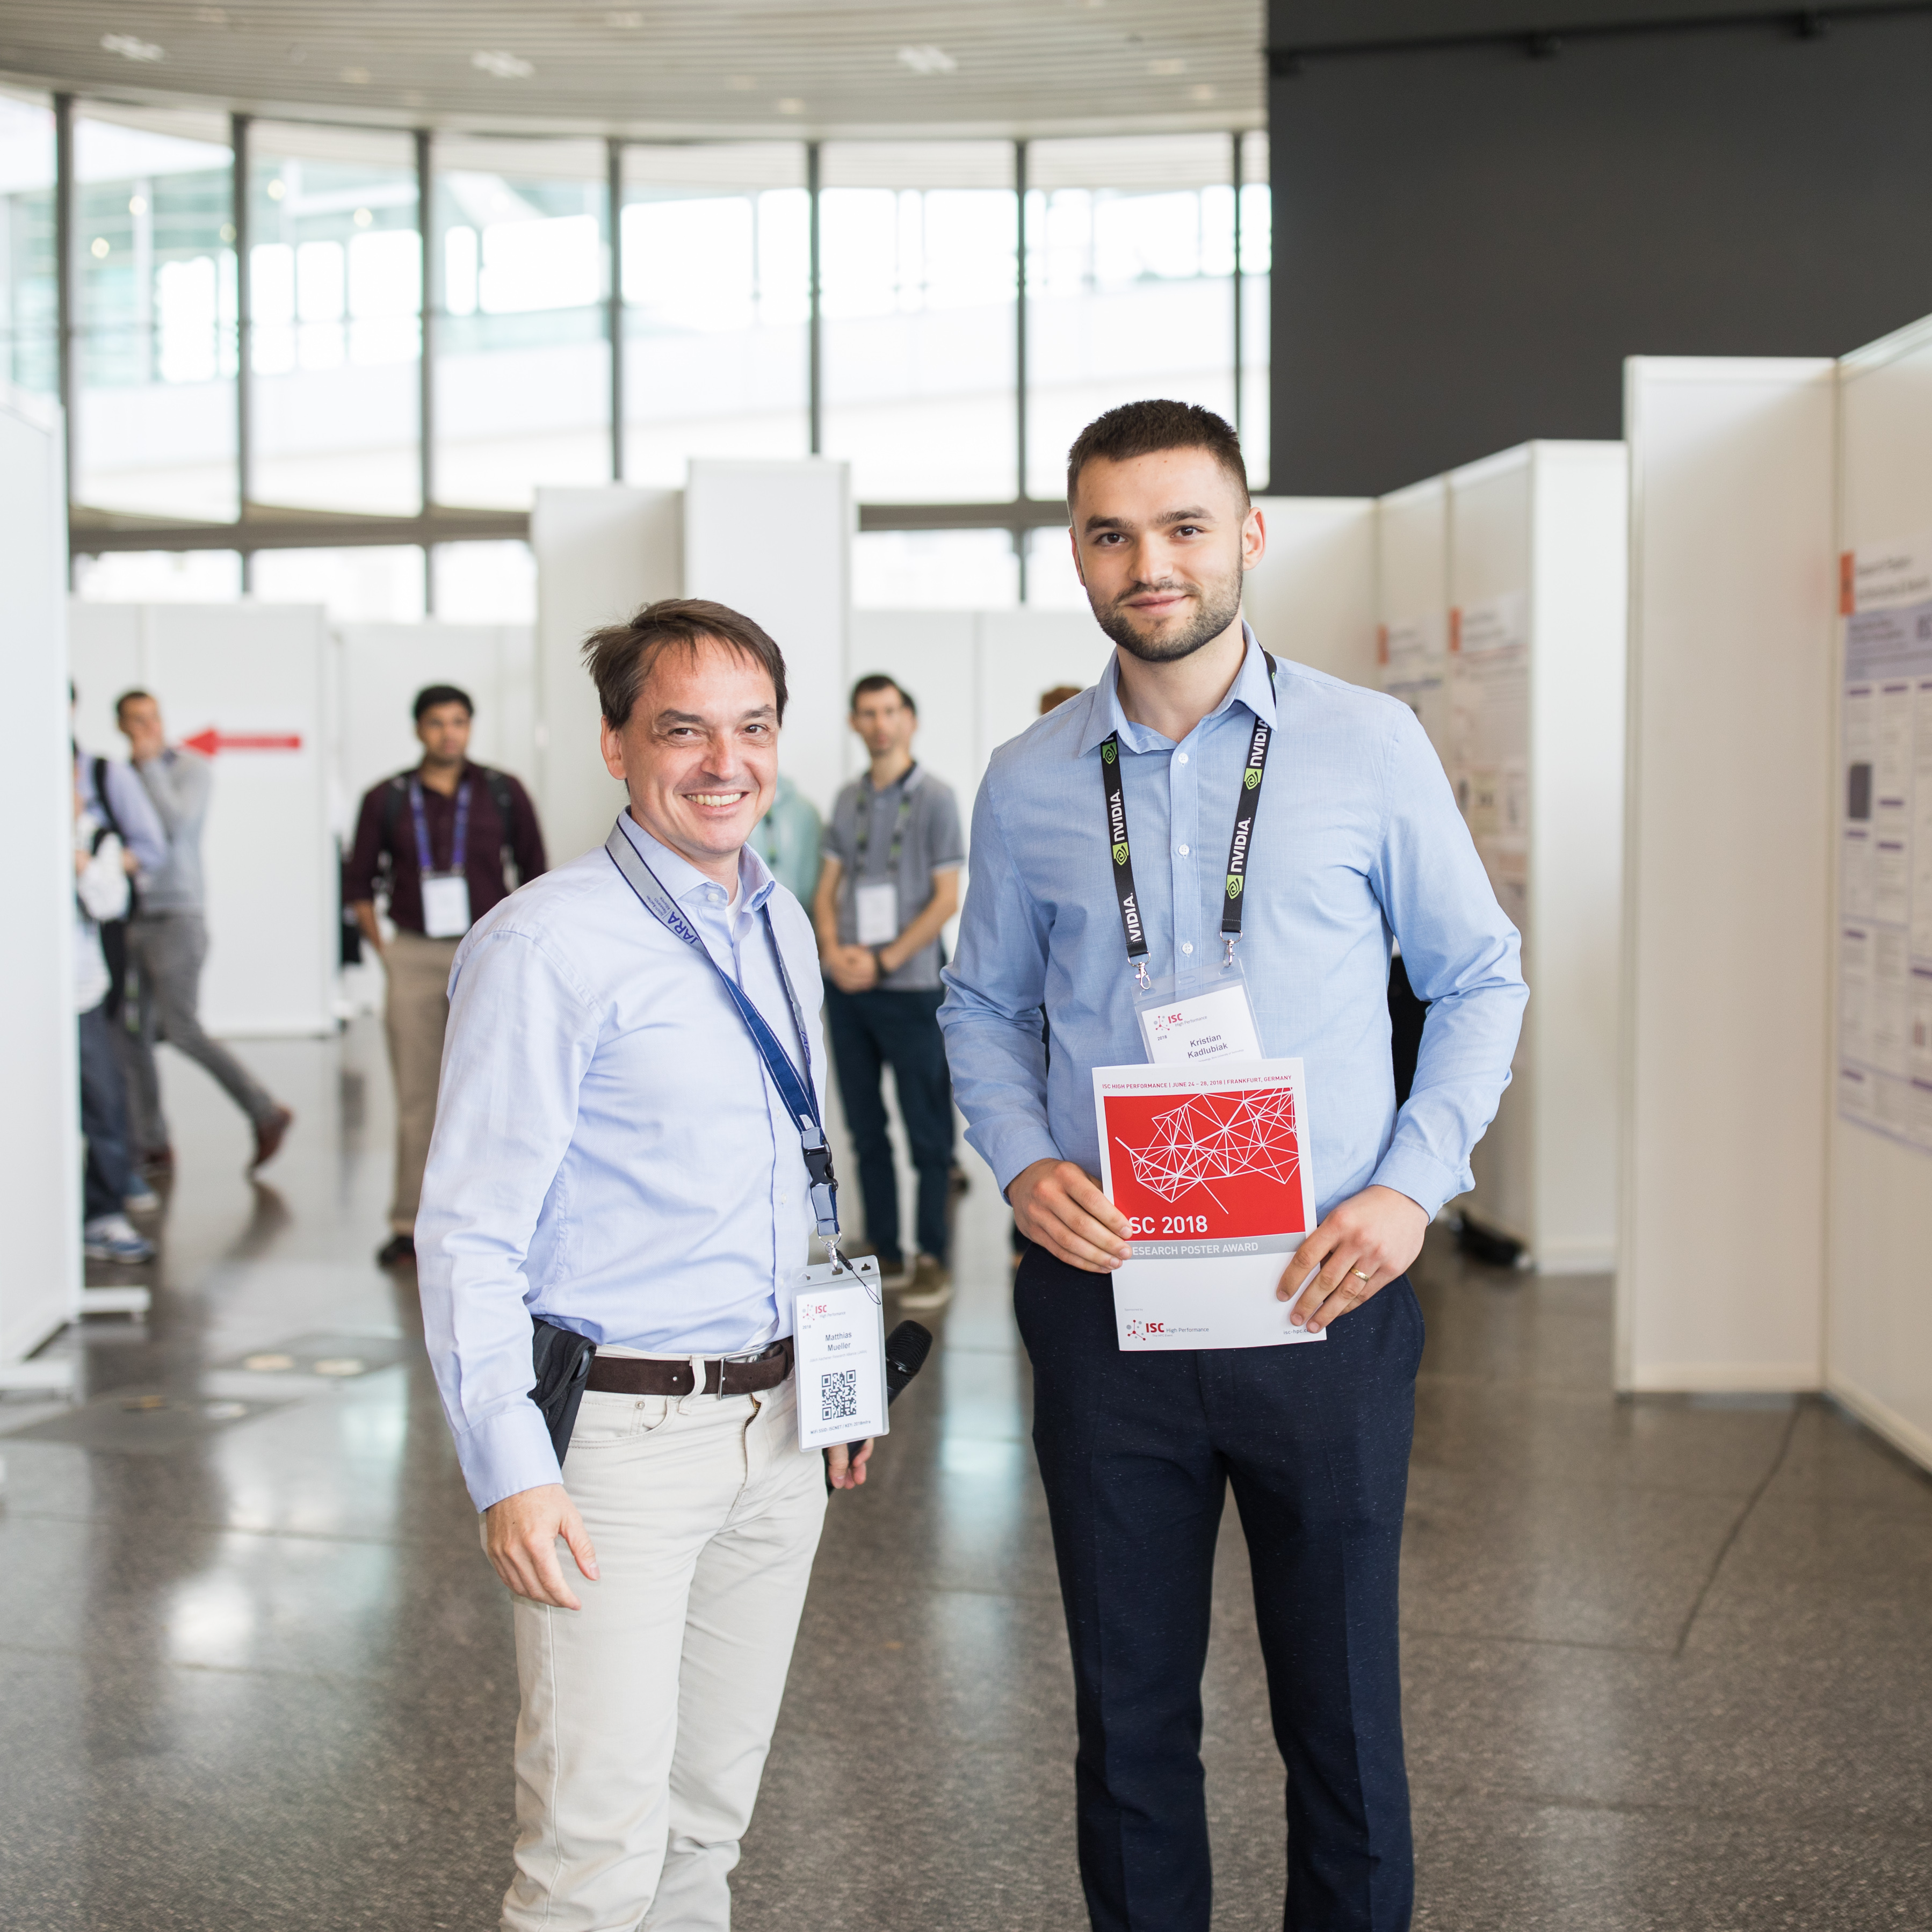 ISC2018 Research Poster Award winner